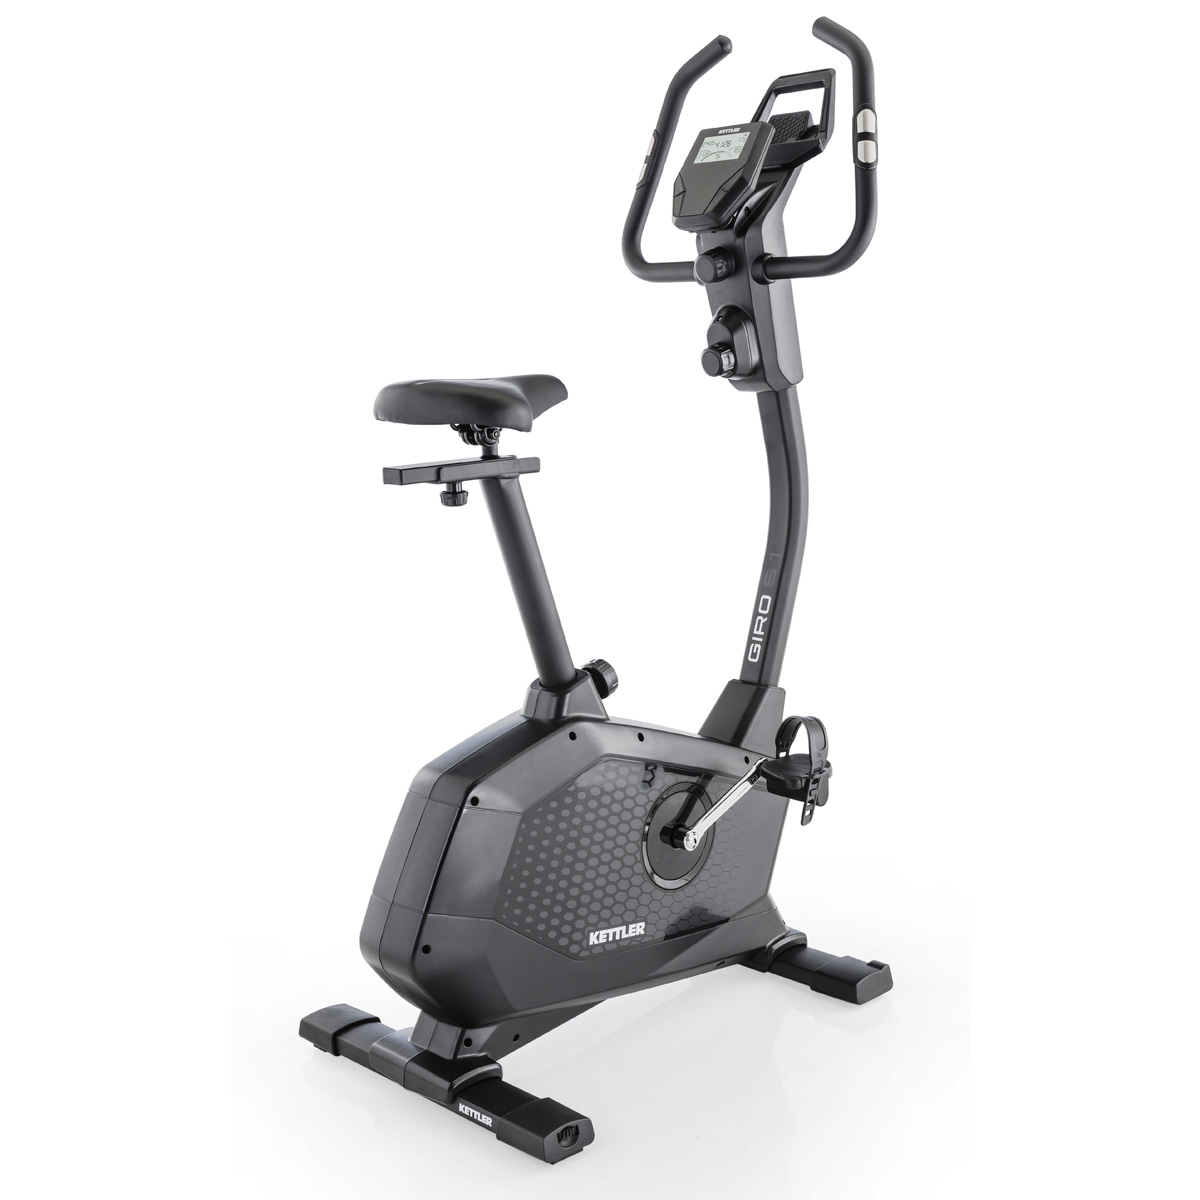 Giro S1 Black Upright Exercise Bike w/ Heart Rate Sensor (Home Gym Use) by Kettler